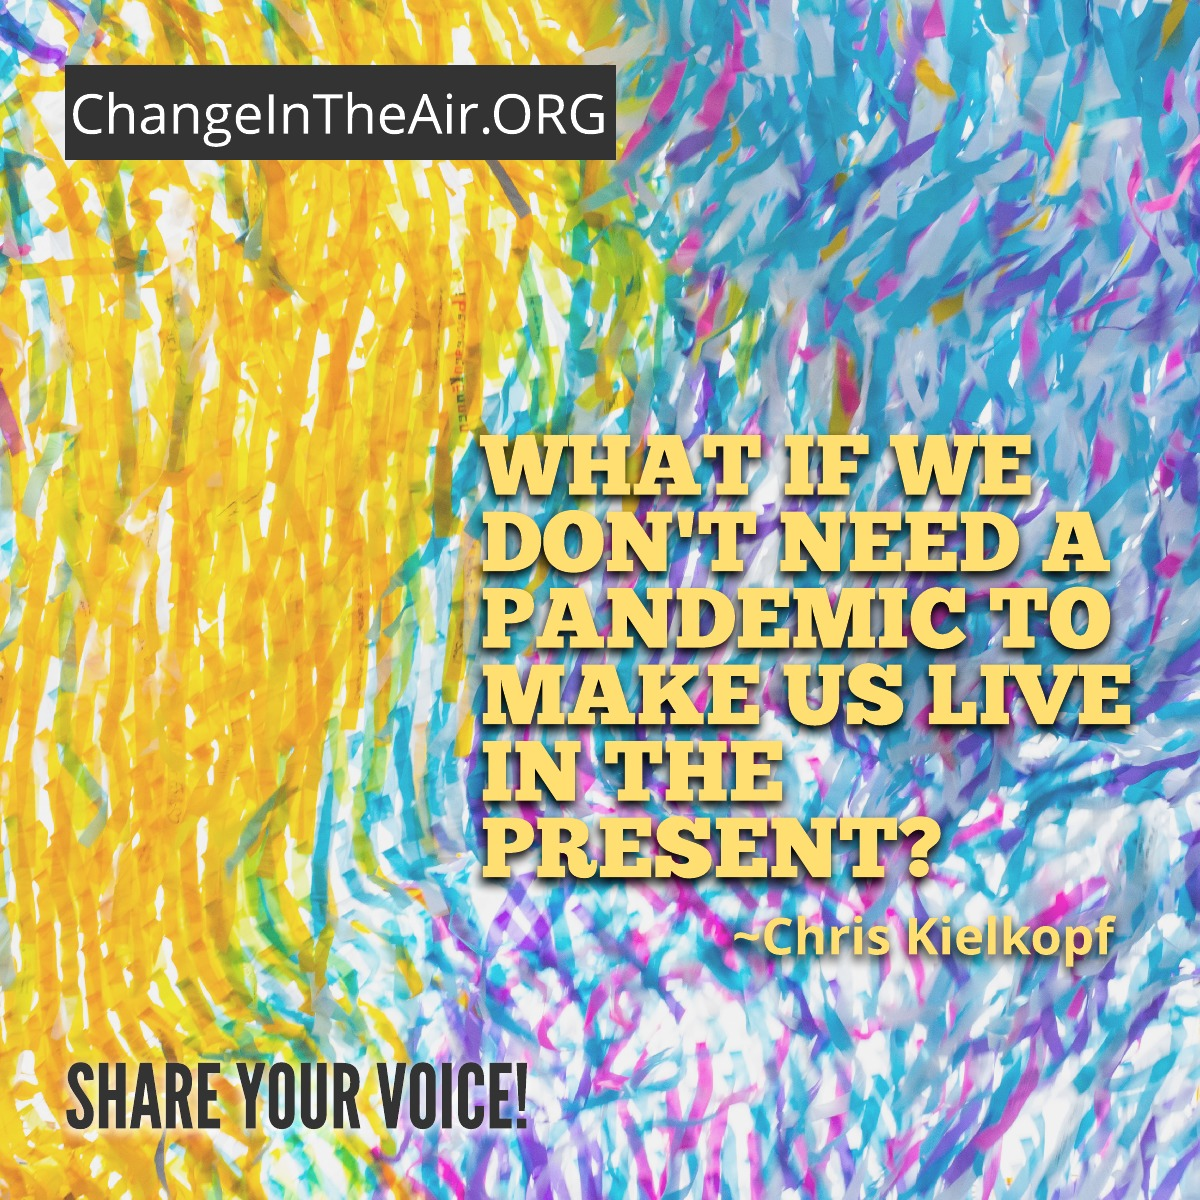 Change in the Air message. What if we don't need a pandemic to makes us live in the present?